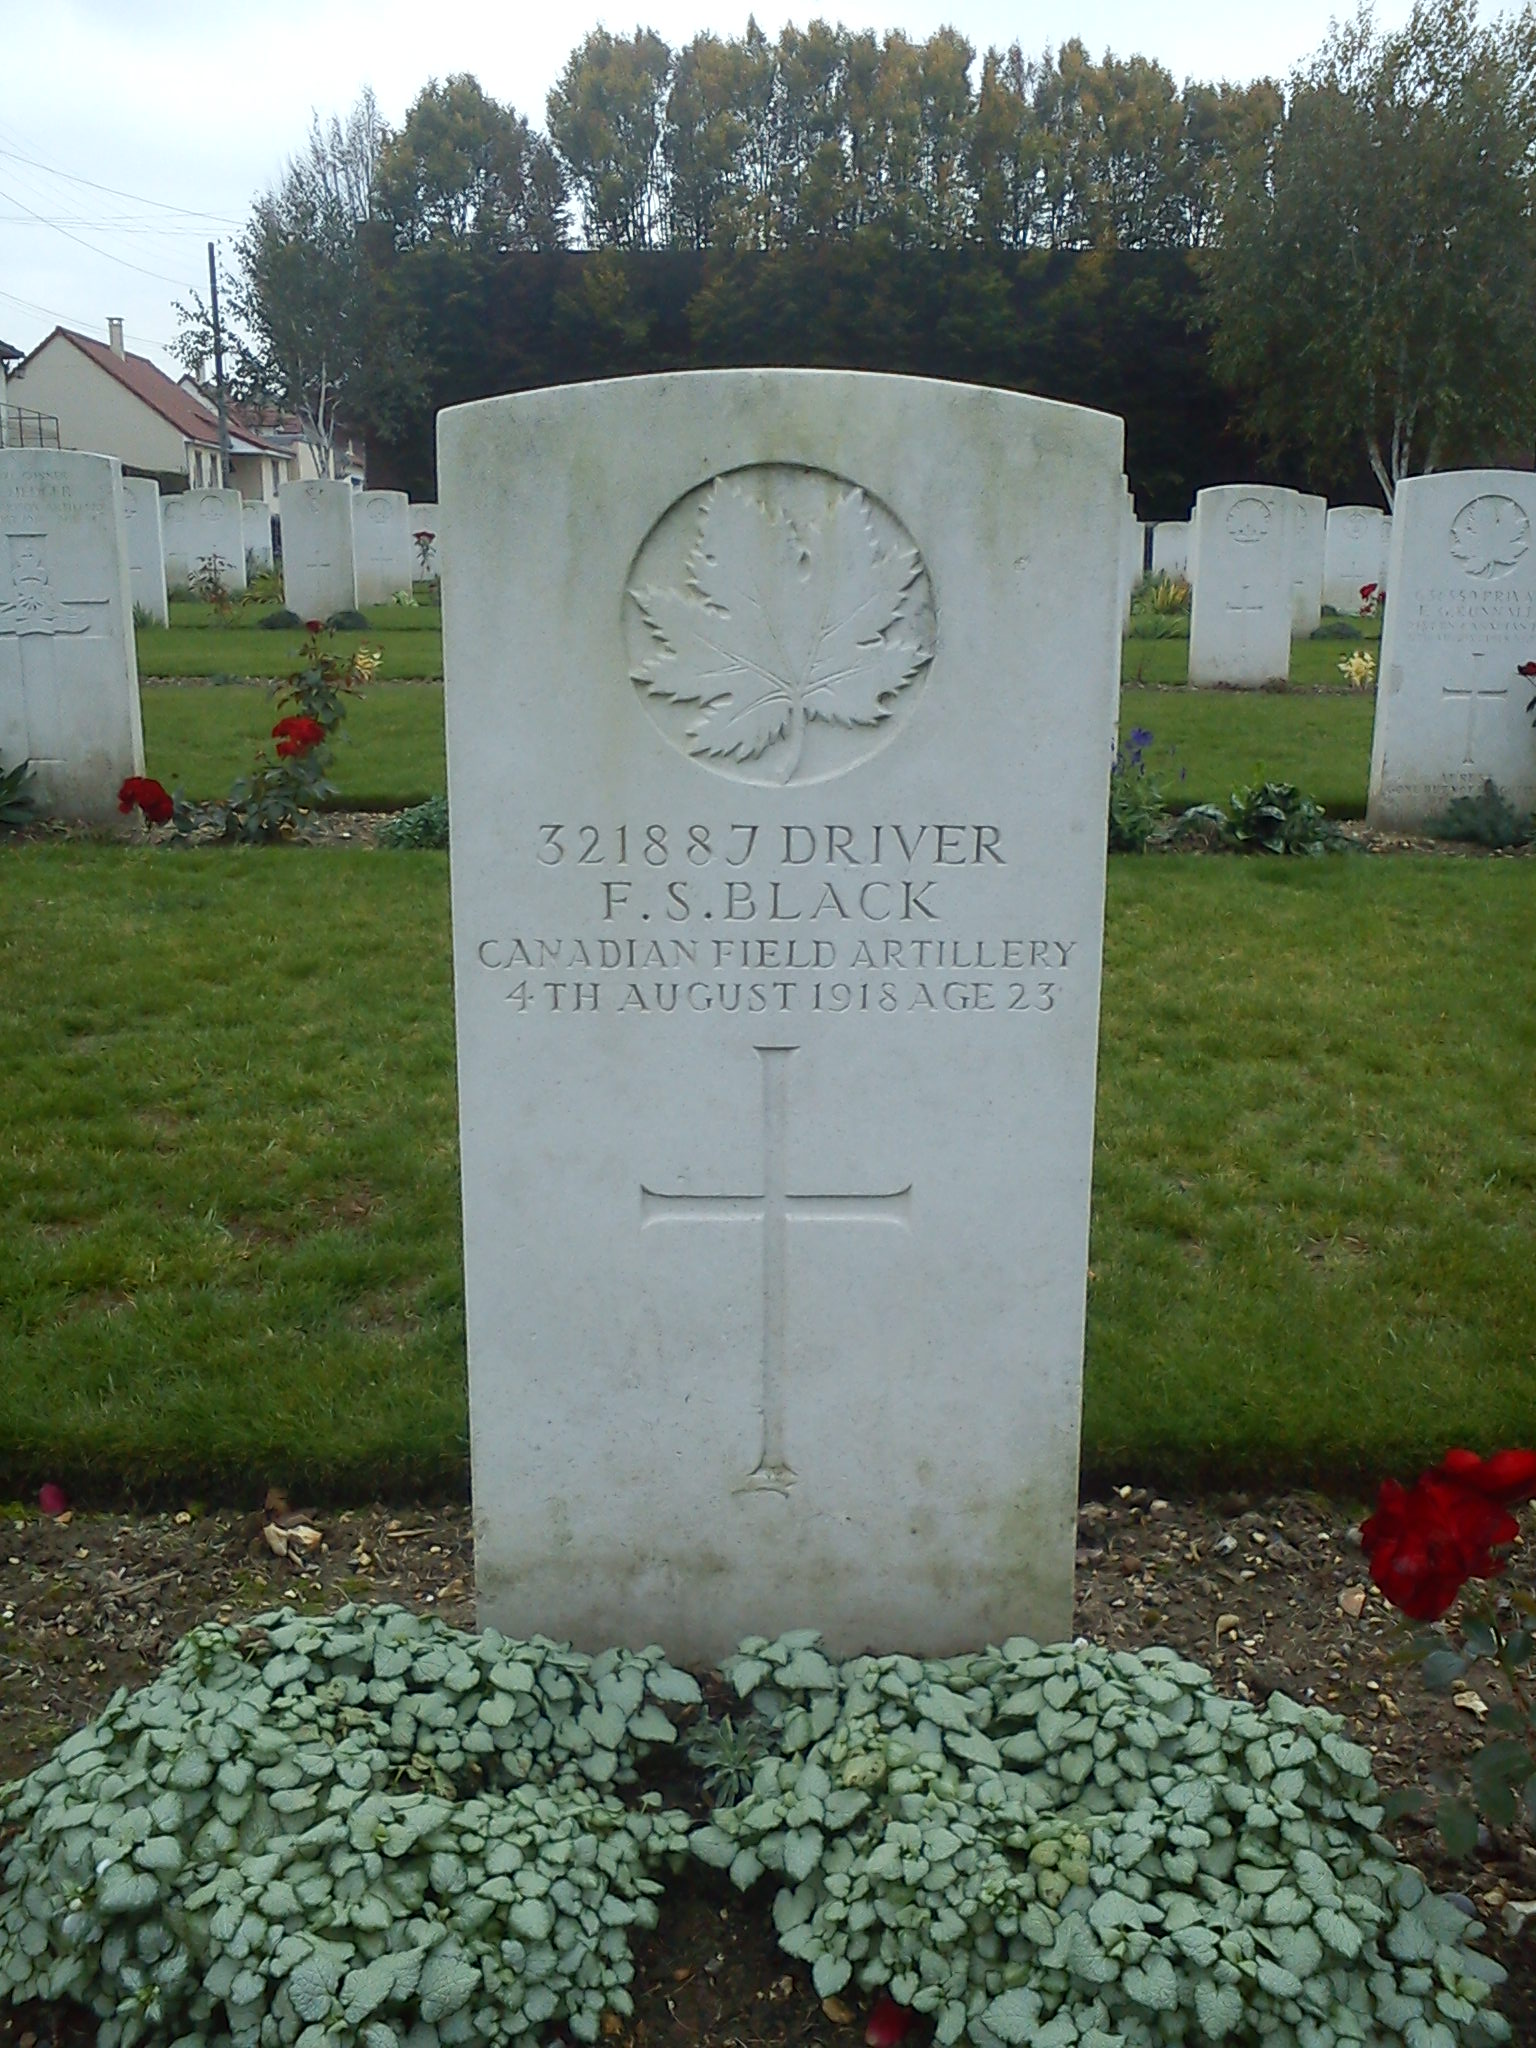 Grave Marker– Picture of Longueau (FRANCE 80) cemetery - BLACK's grave